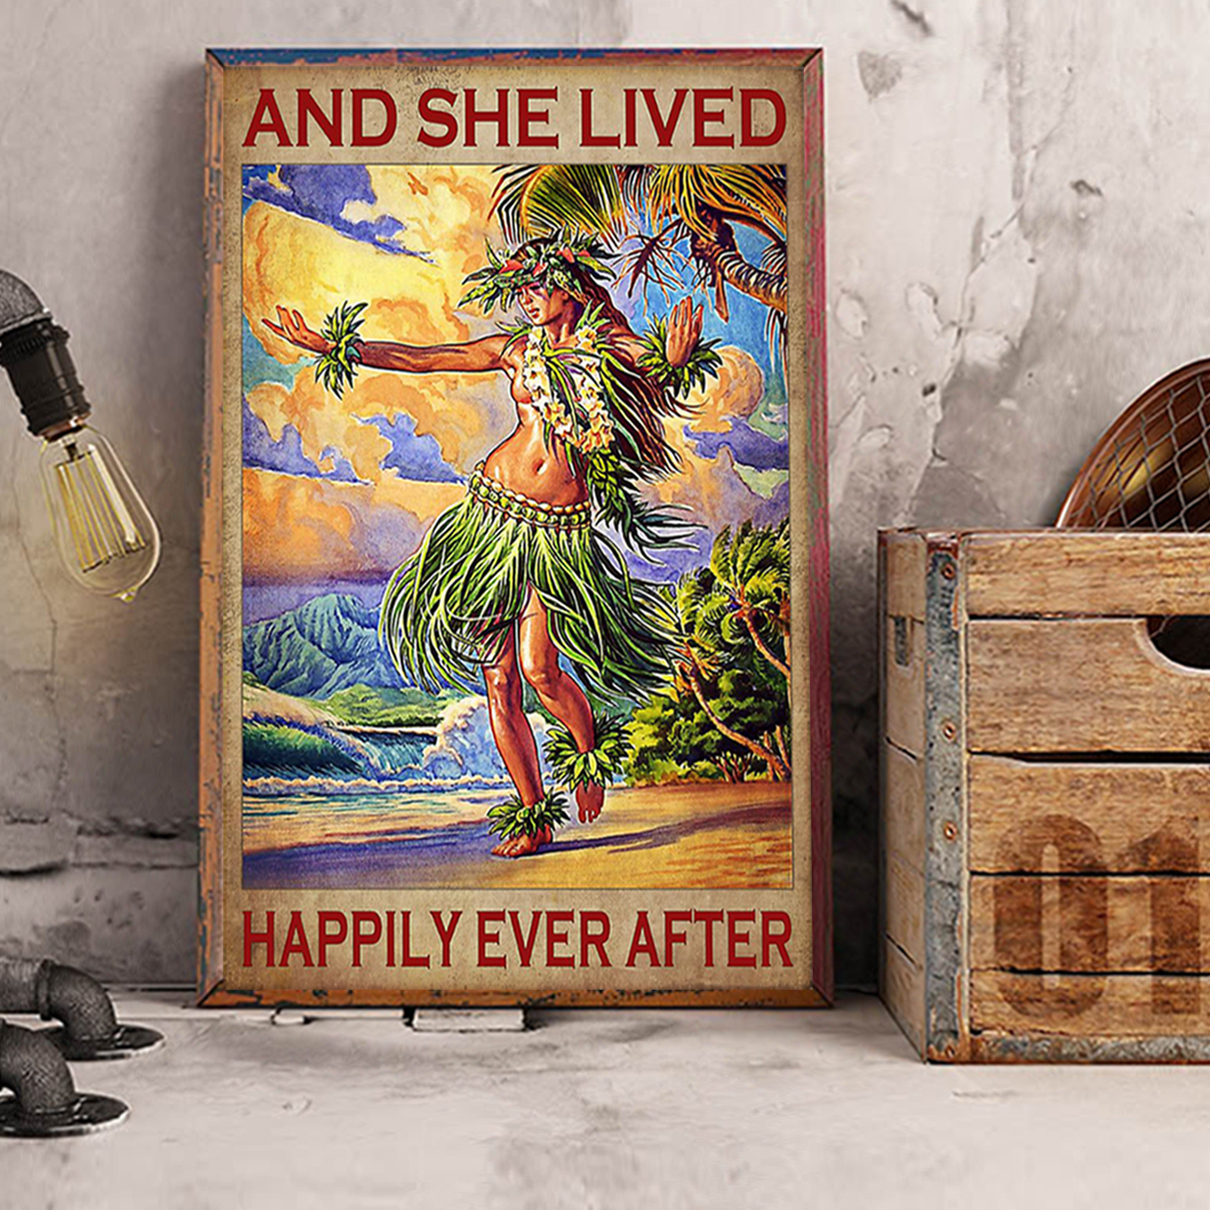 Hawaii girl and she lived happily ever after poster A1